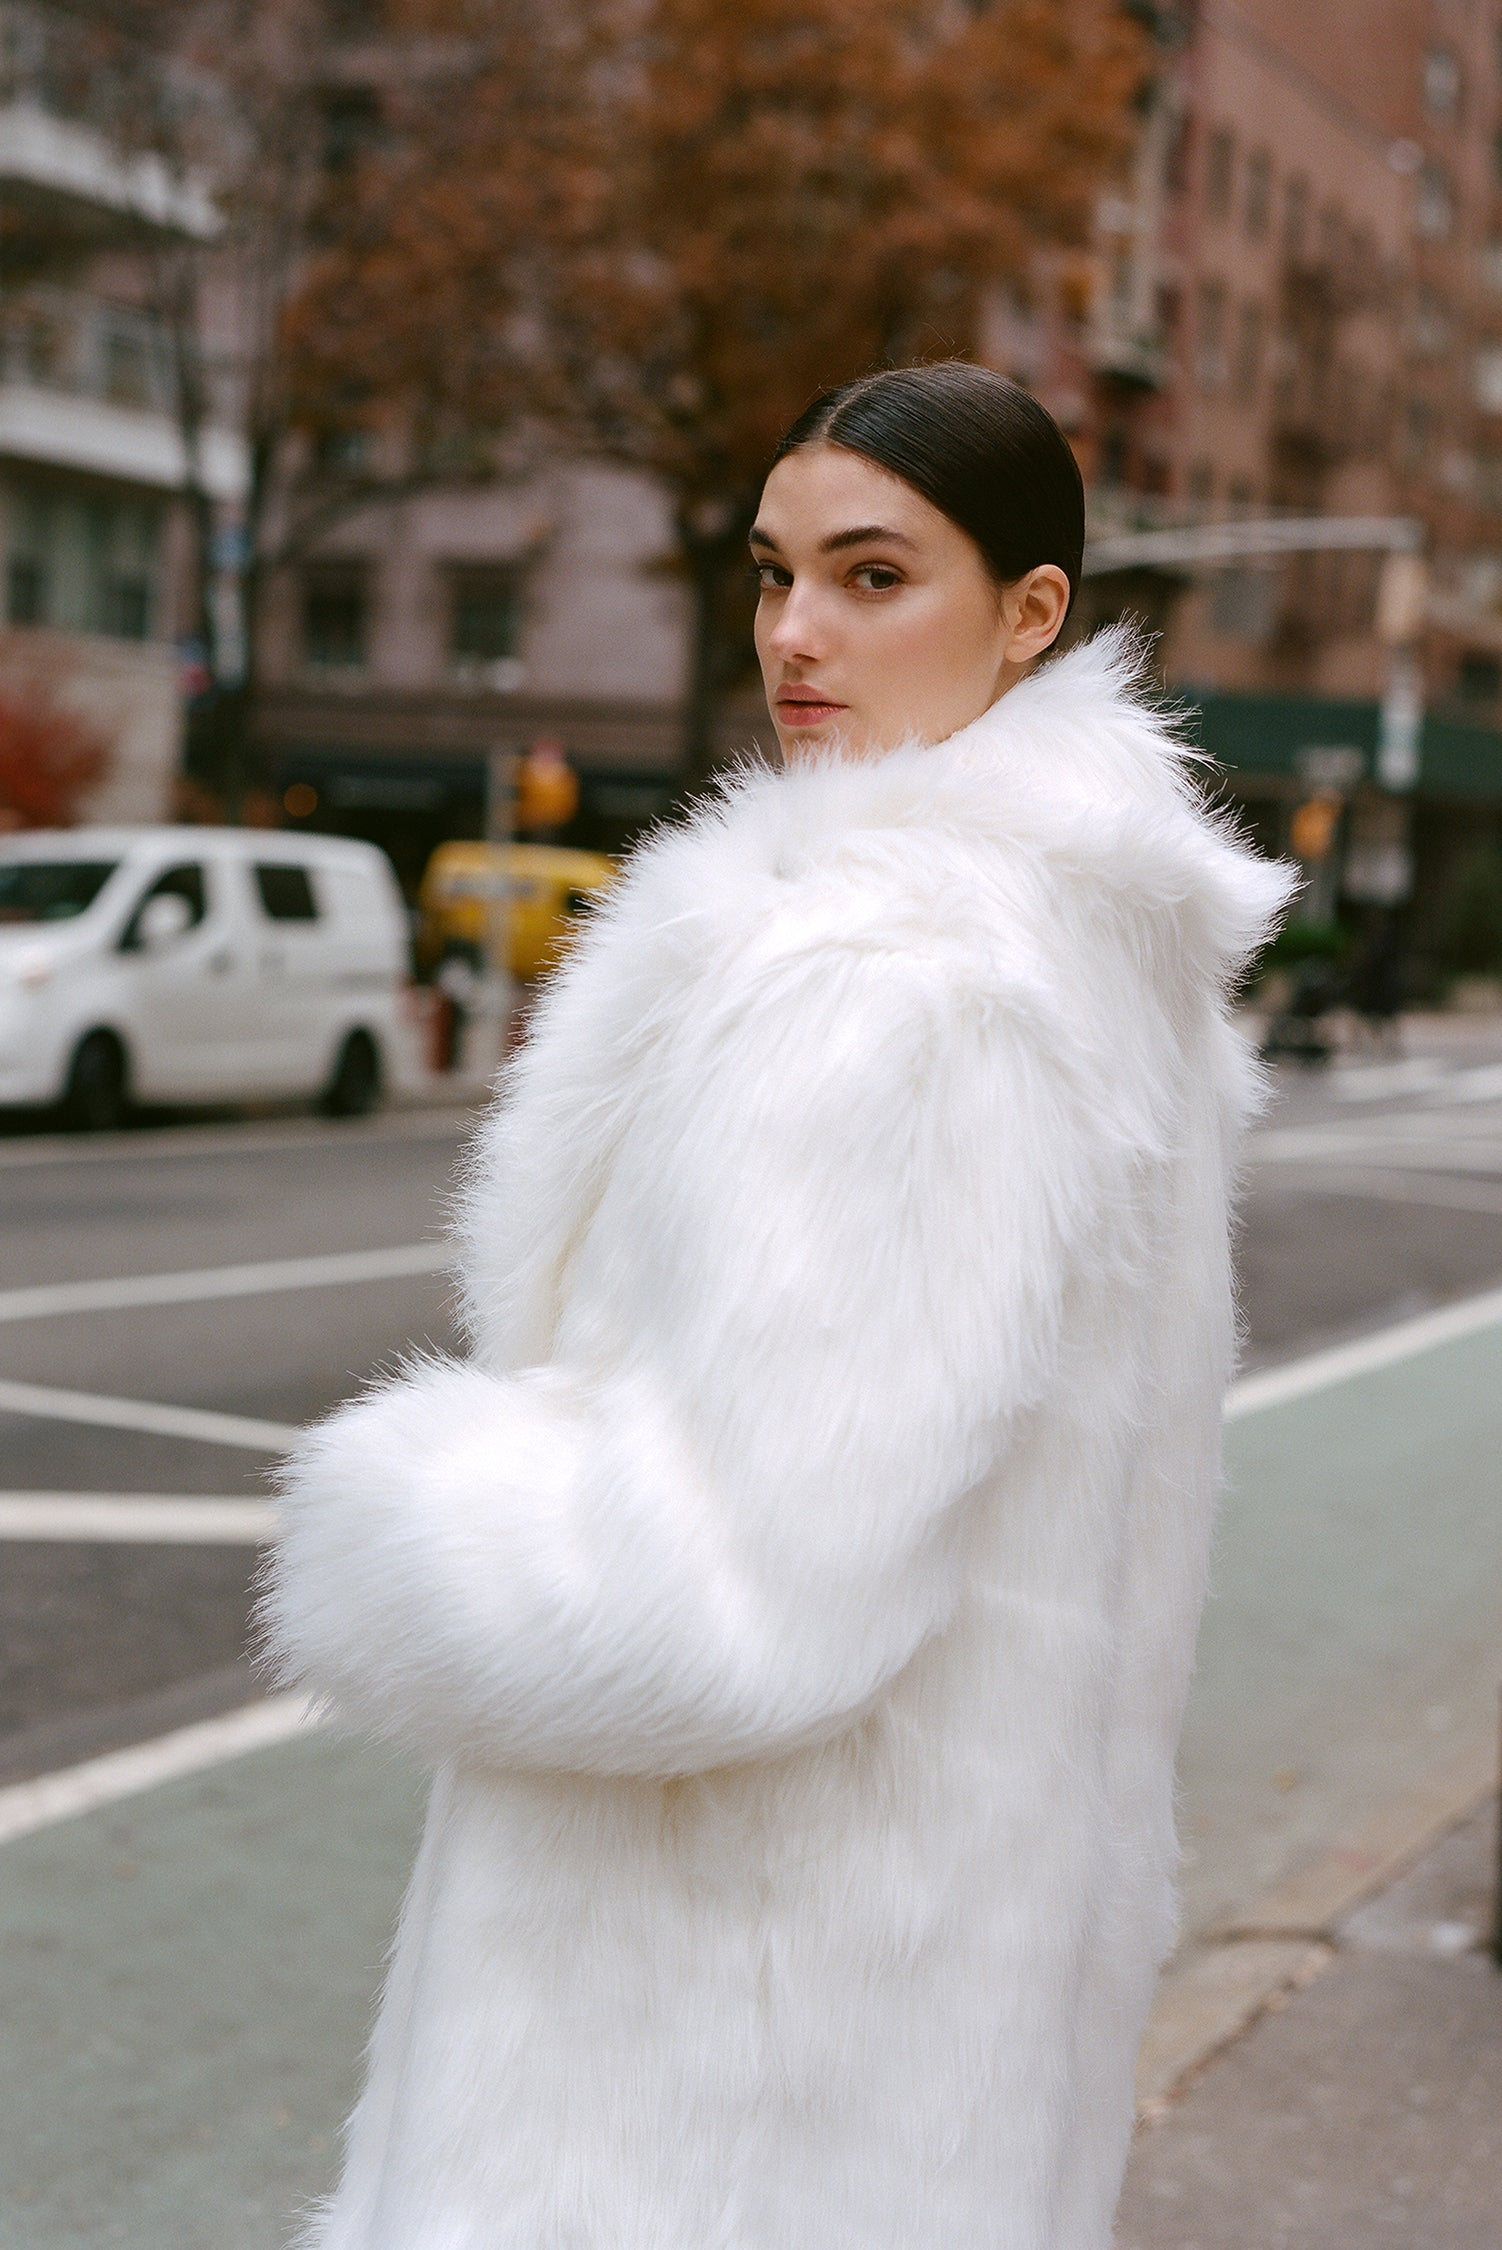 Marei1998's Datura Long Faux Fur Coat In Ivory Color. Featuring A Slight A-Lined Silhouette, It Is Made From The Fluffiest Long Pile Faux Fur. Side View.